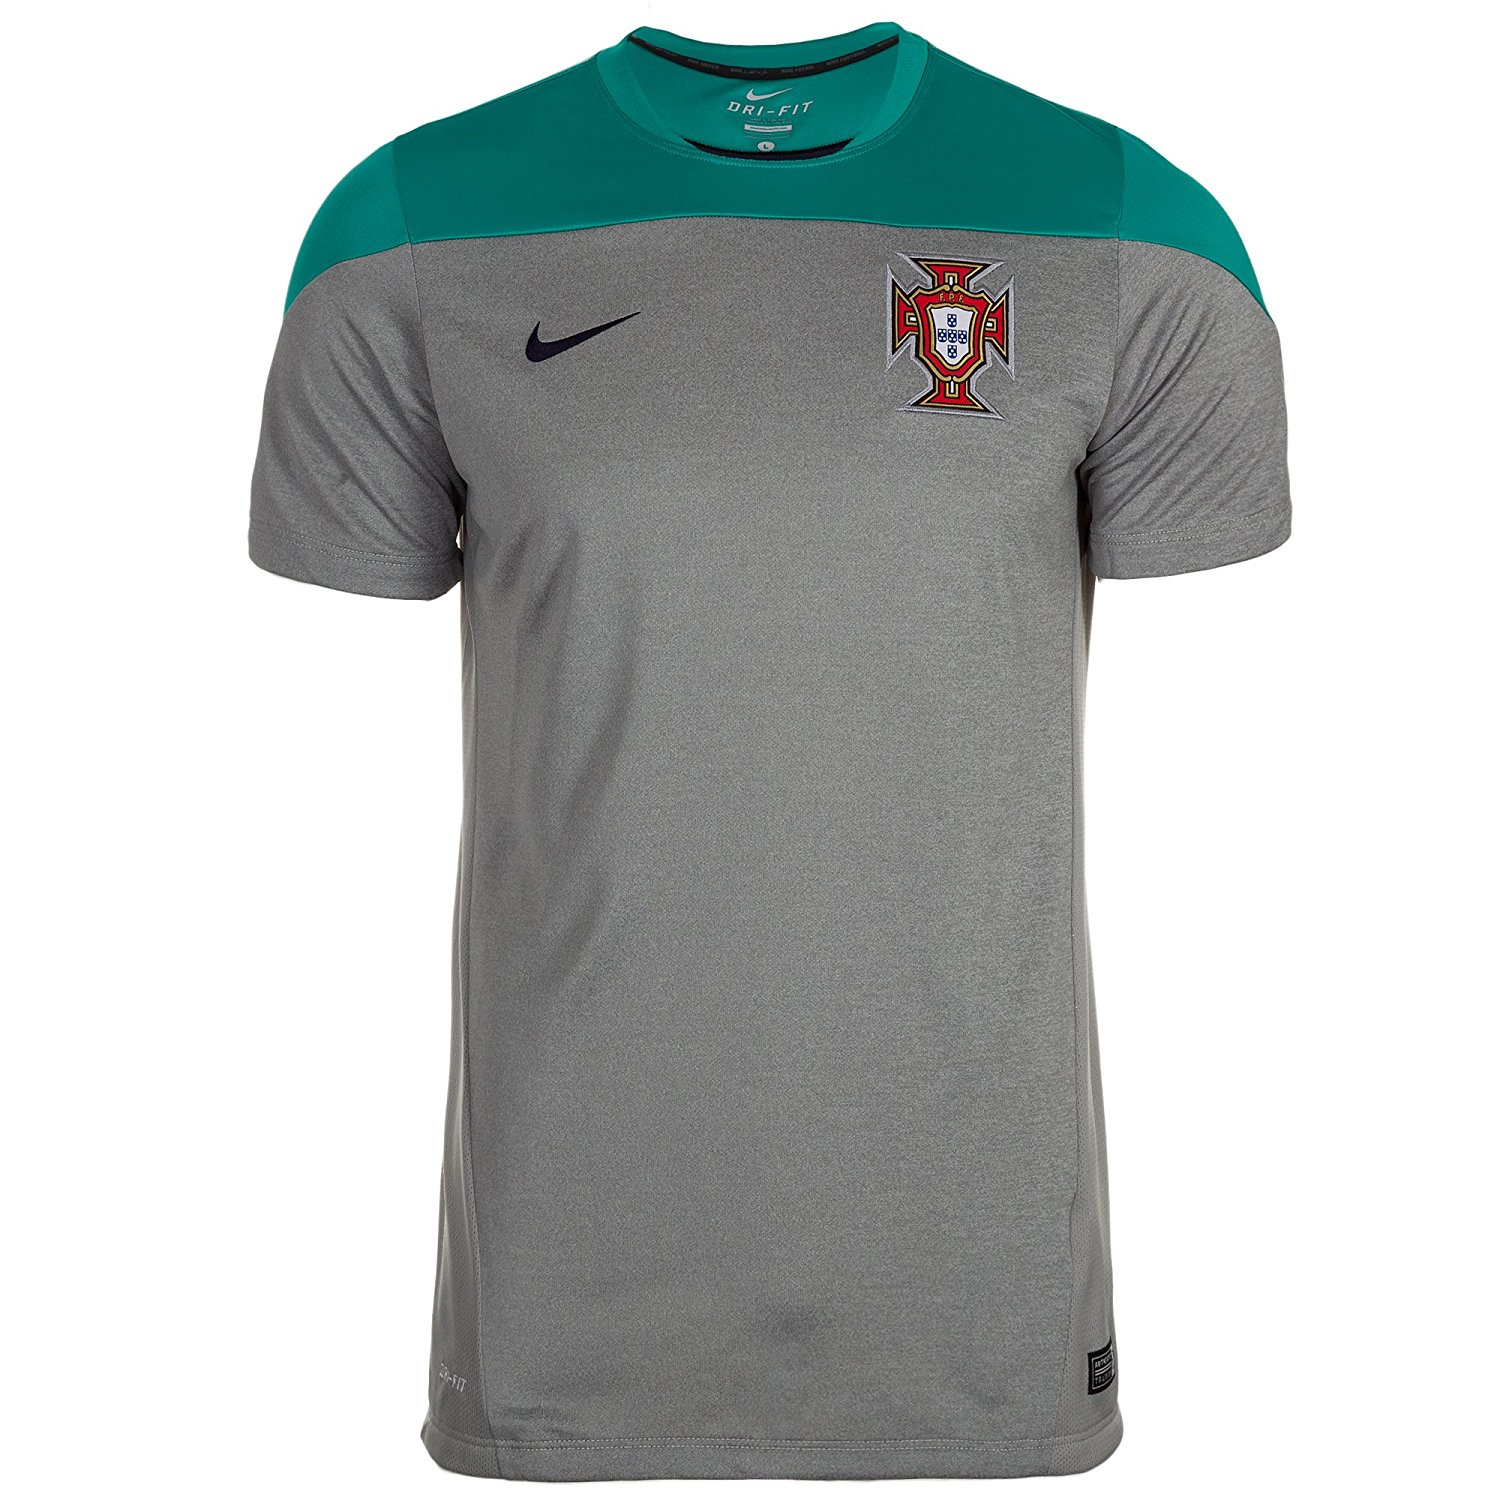 Nike At T Cheap On Shirt Grey Line Shirt Find Deals awUw64qx5